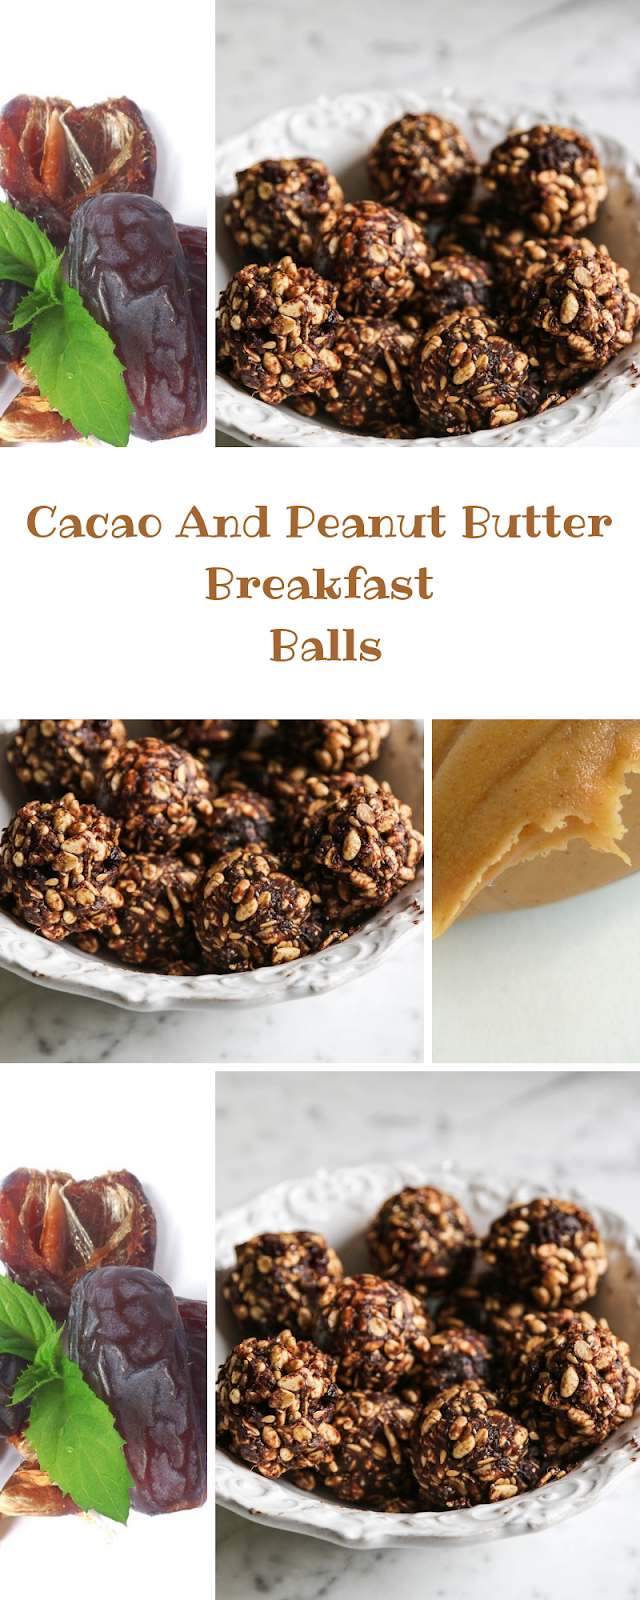 Cacao And Peanut Butter Breakfast Balls